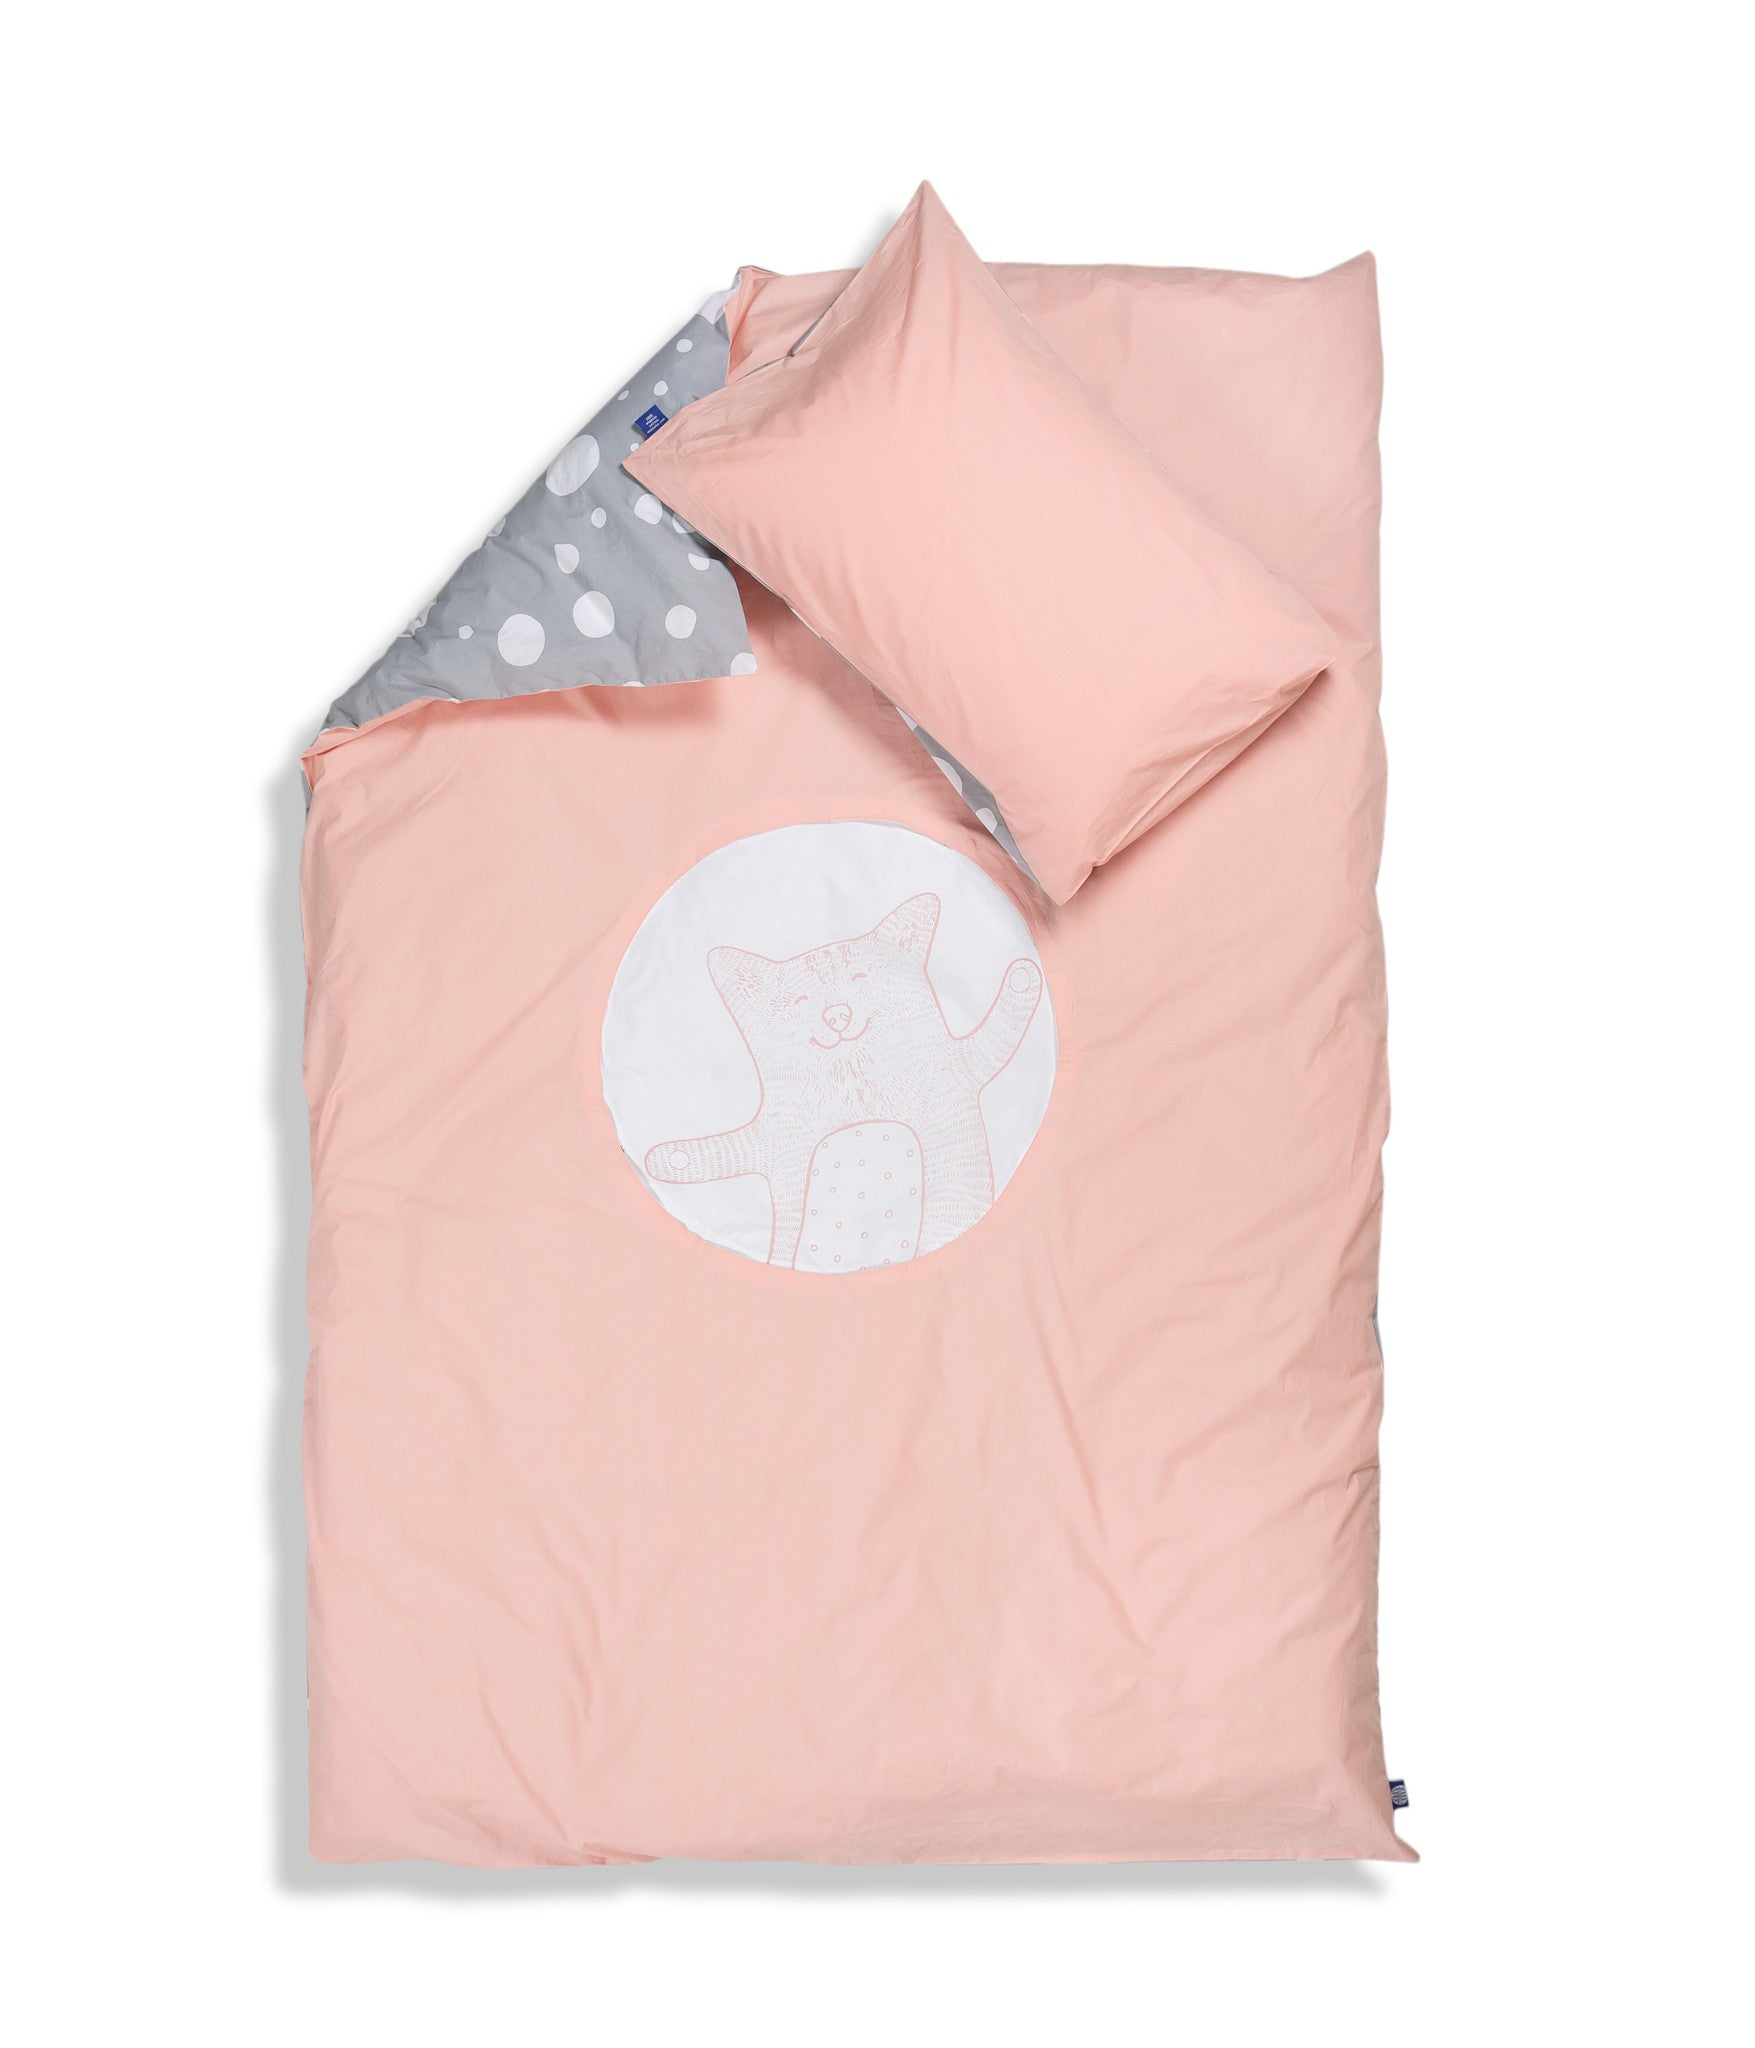 Organic cotton kids bedding set. Pillow case and duvet cover. Pink and grey colours, dotted pattern. Main bed linen character cat Shoo.